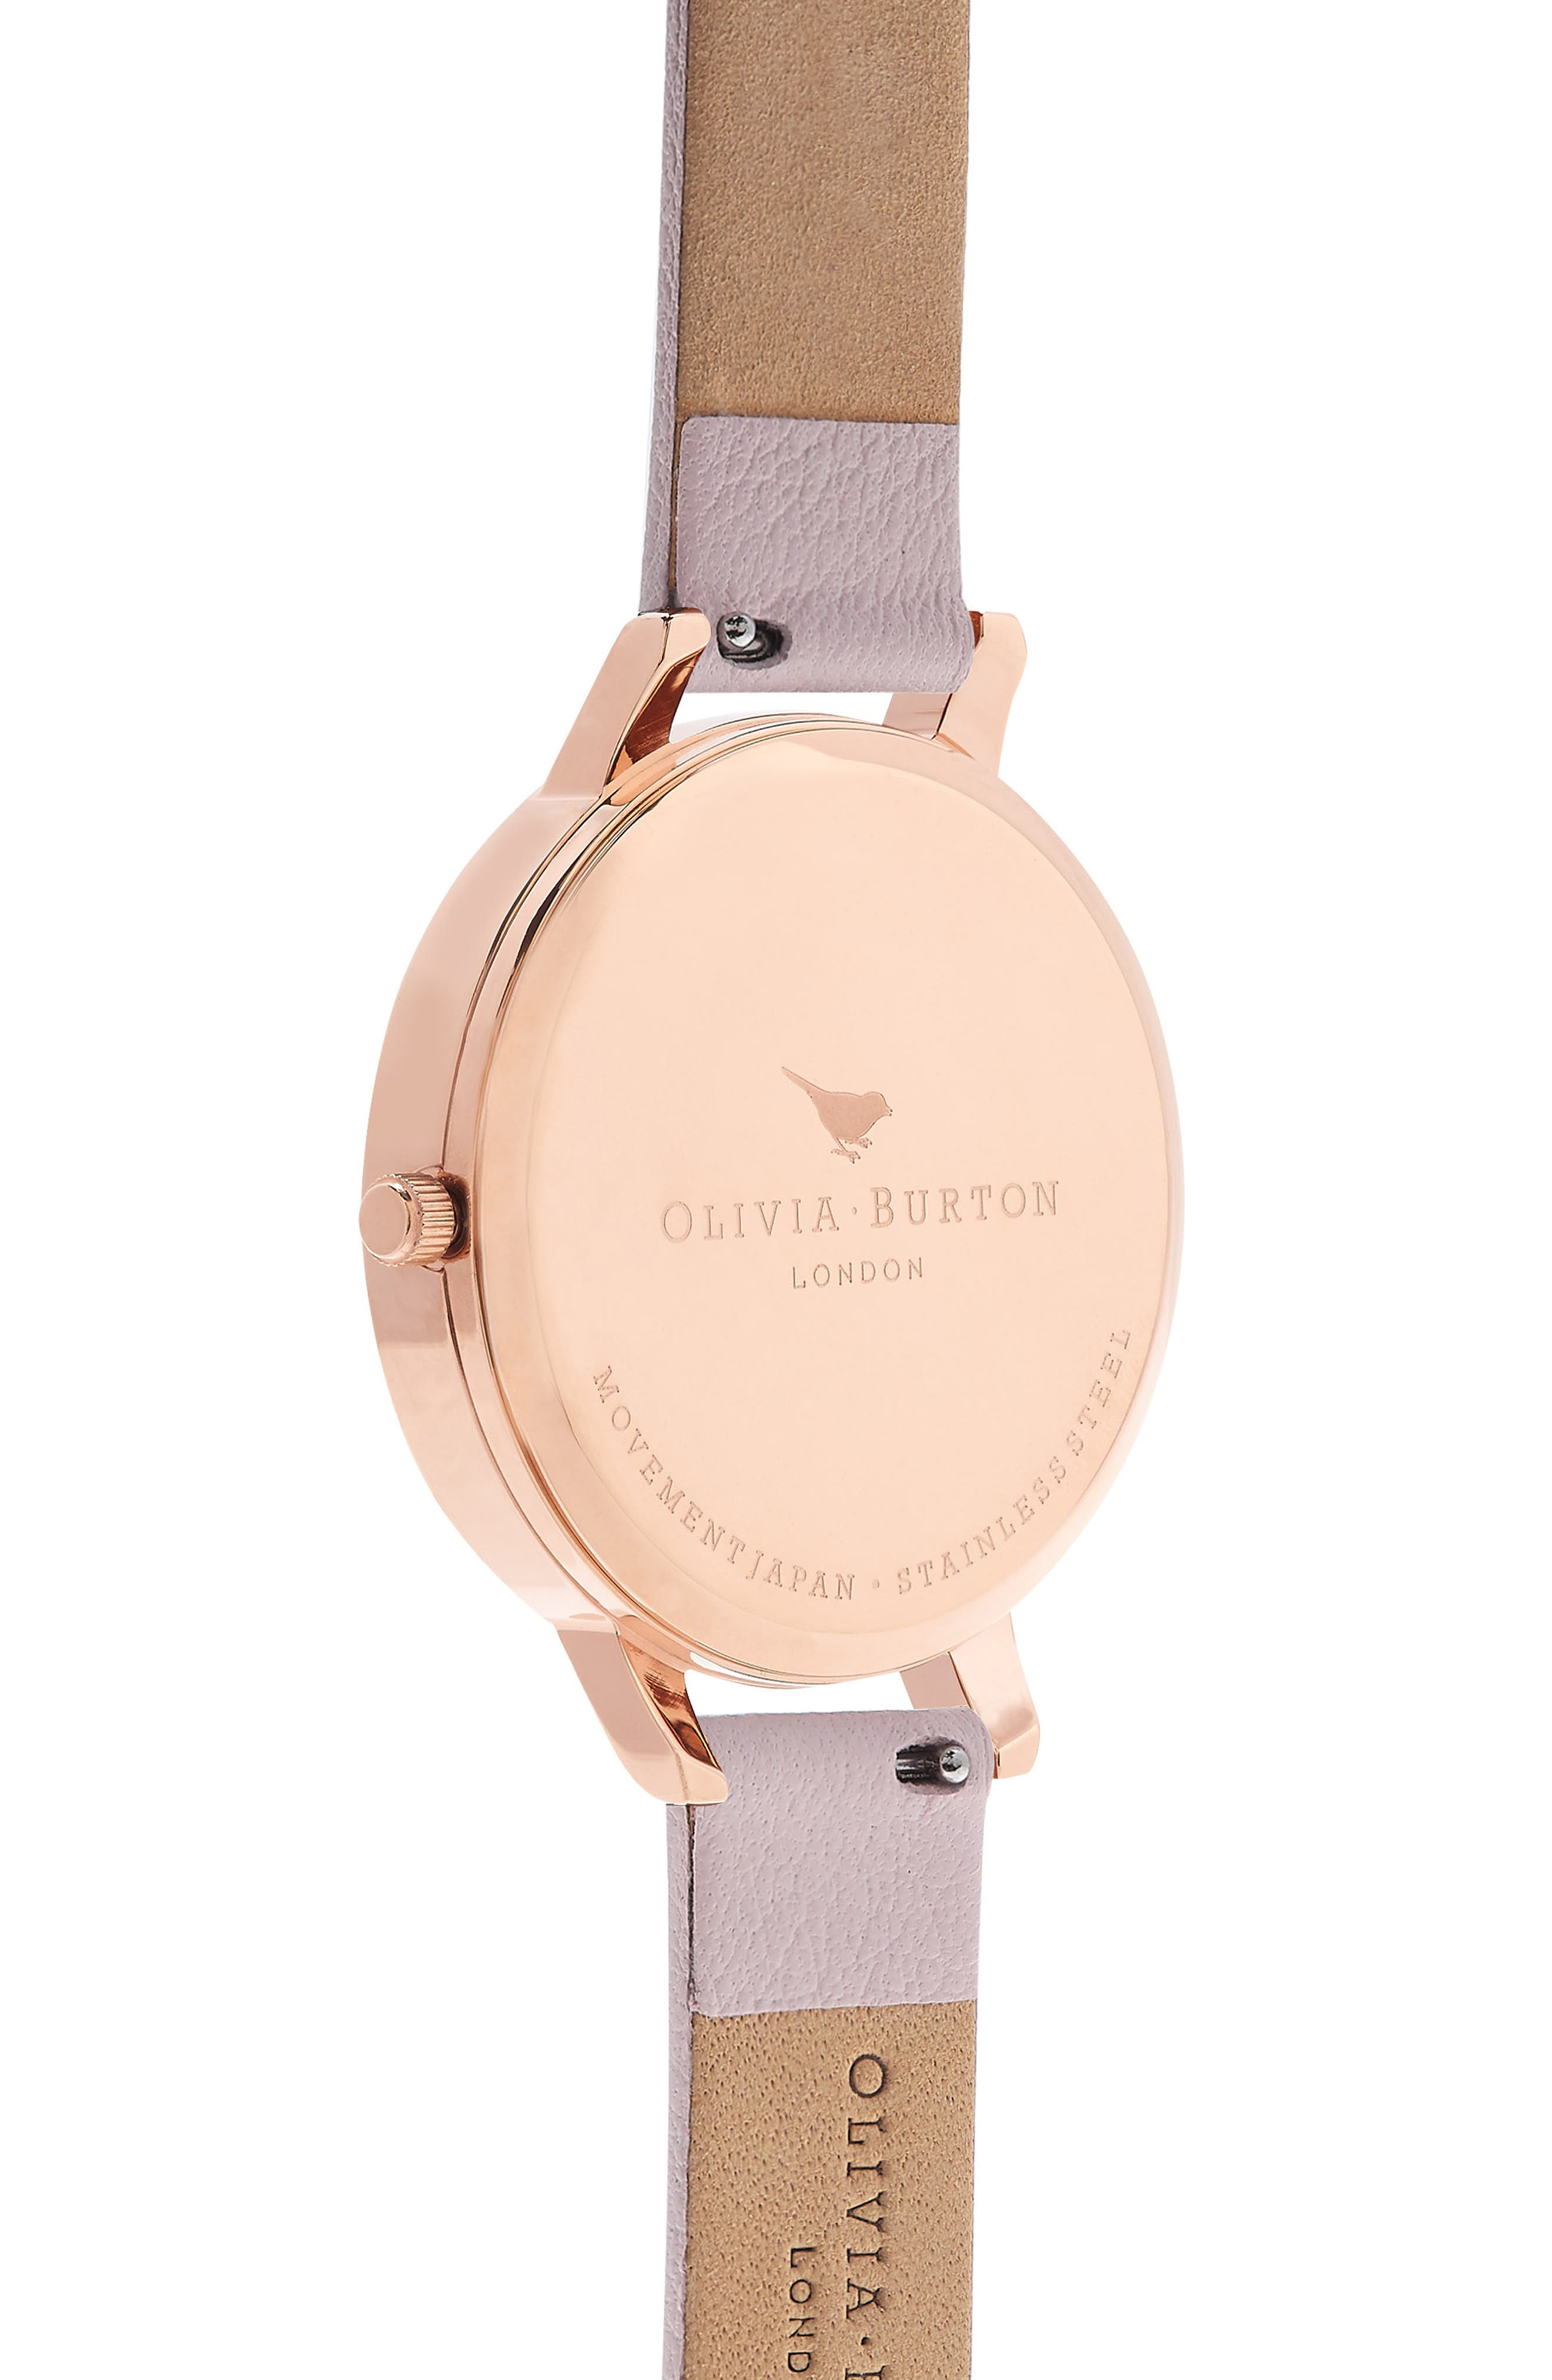 OLIVIA BURTON,                             Sunray Leather Strap Watch, 38mm,                             Alternate thumbnail 2, color,                             BLOSSOM/ ROSE GOLD